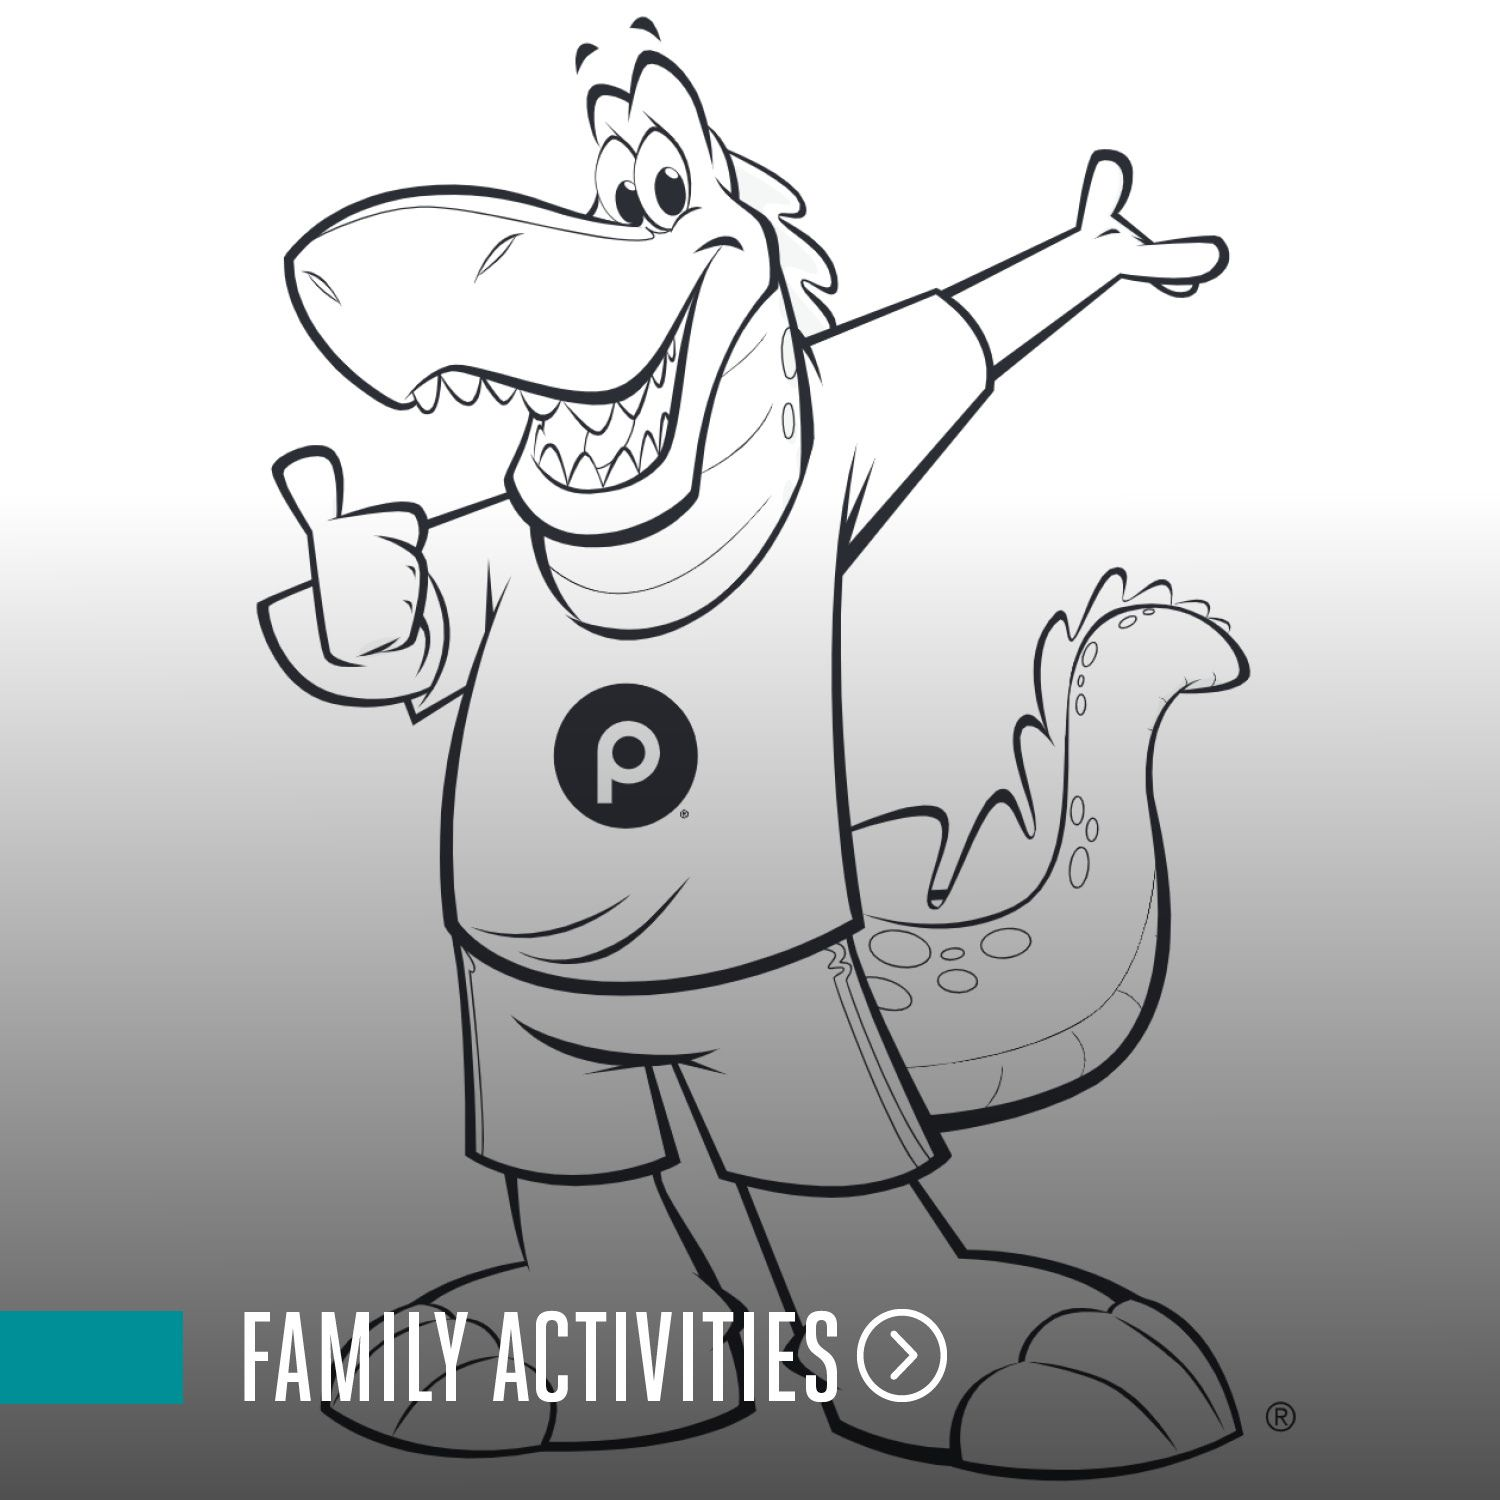 Graphic: Click To View Publix Family Activities